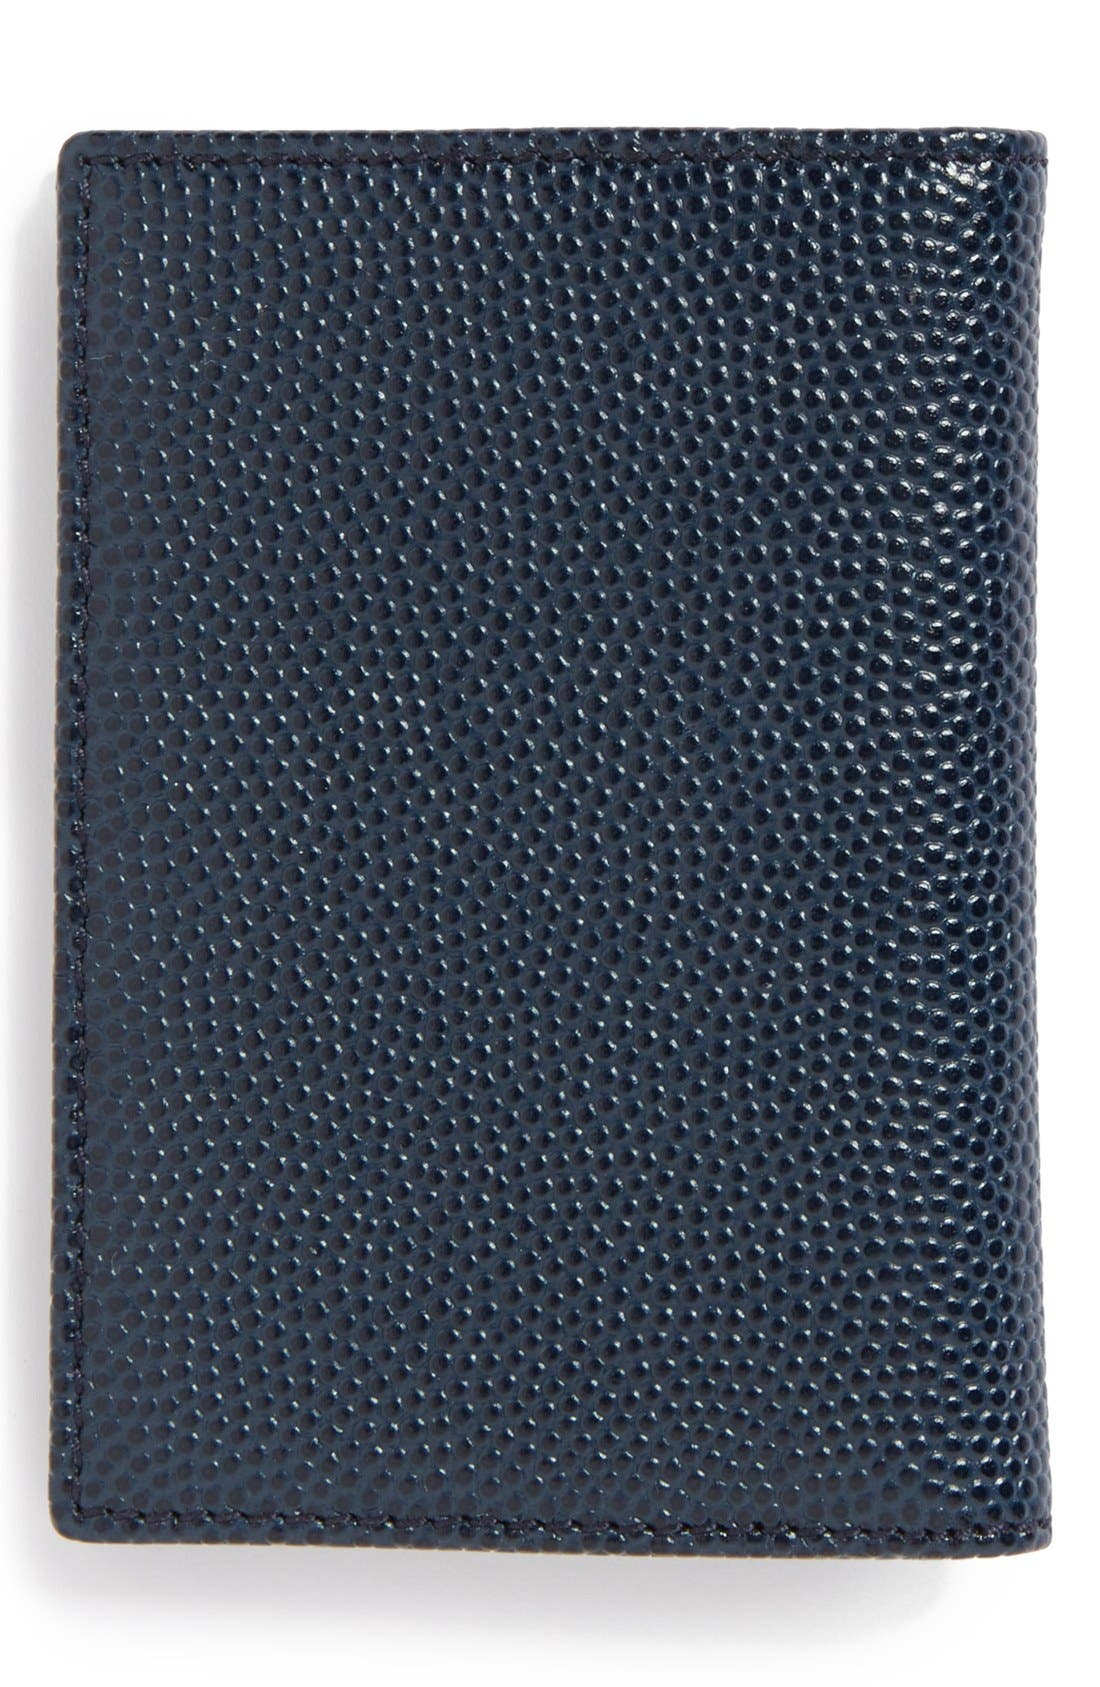 Alternate Image 3  - Salvatore Ferragamo 'Ten Forty One' Leather Card Case